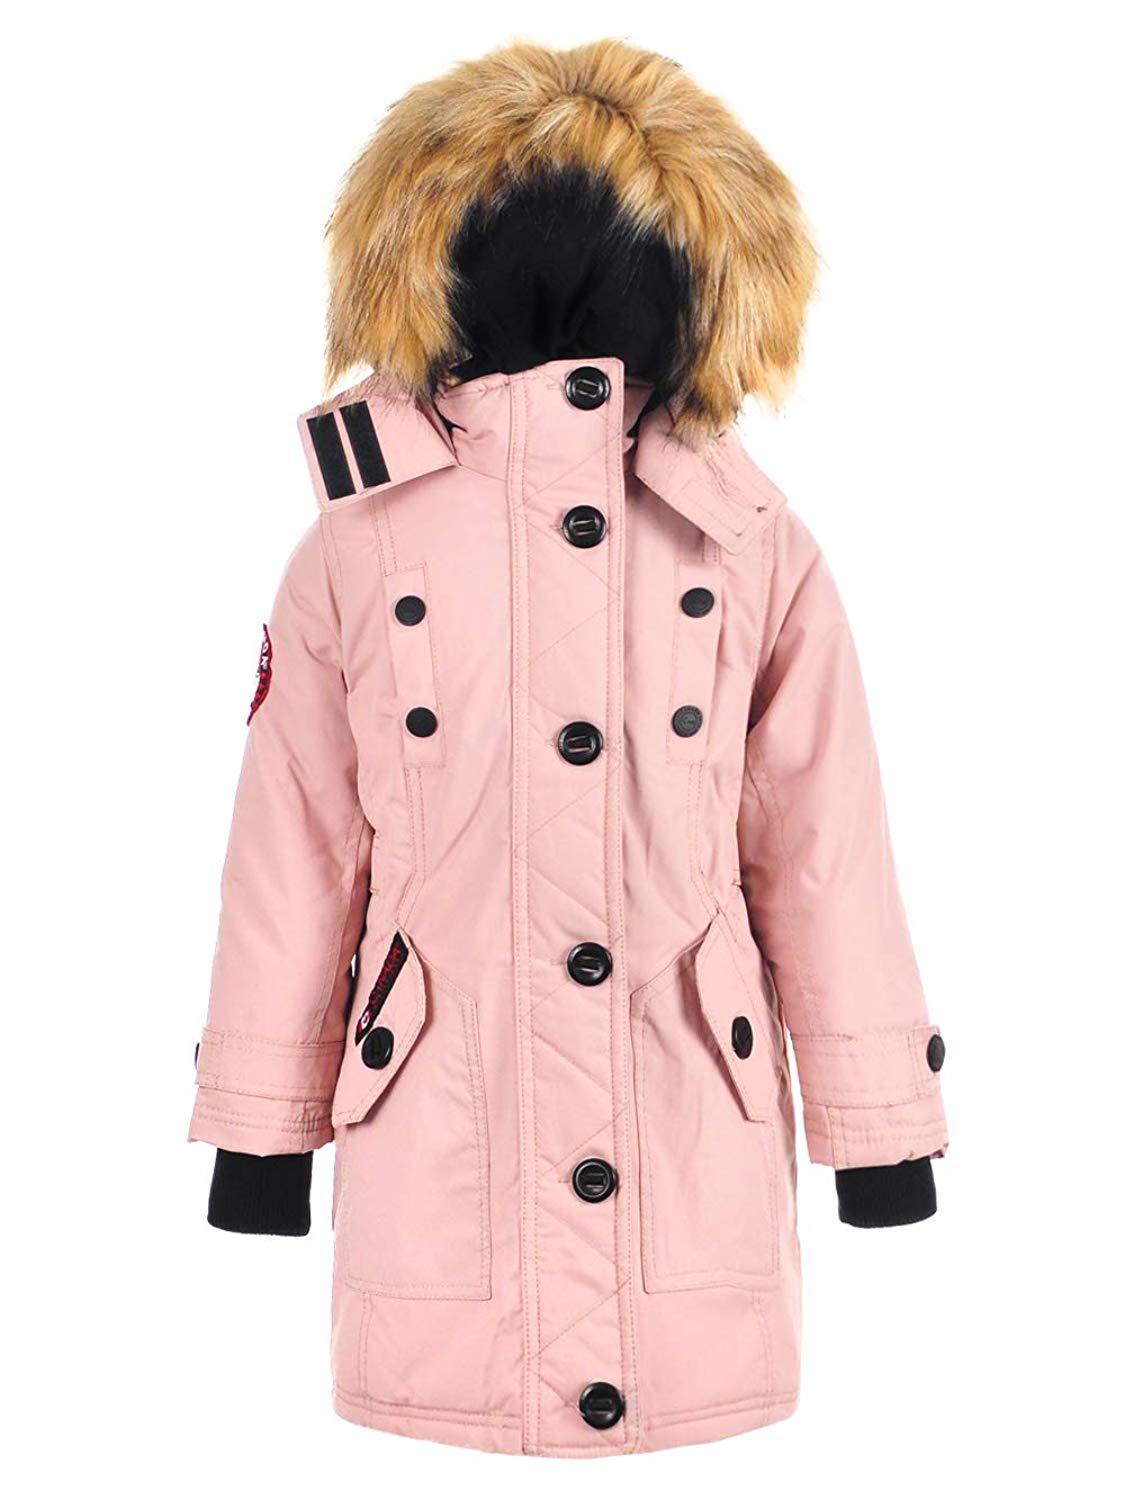 Canada Weather Gear Girls' Insulated Parka